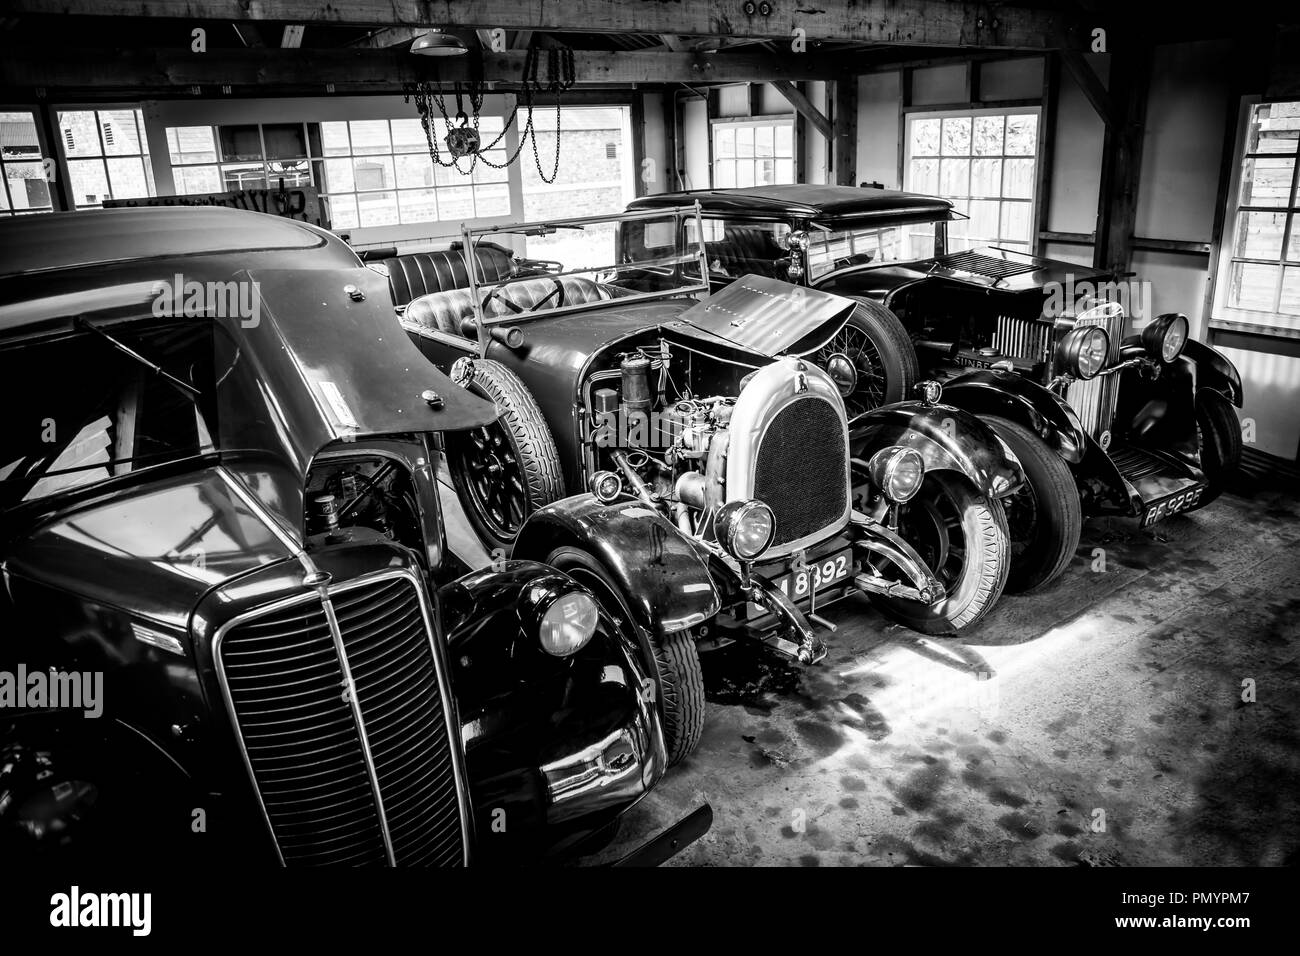 Arty, black and white, landscape shot of classic cars parked, side by side, in a garage taken from a high angle. - Stock Image